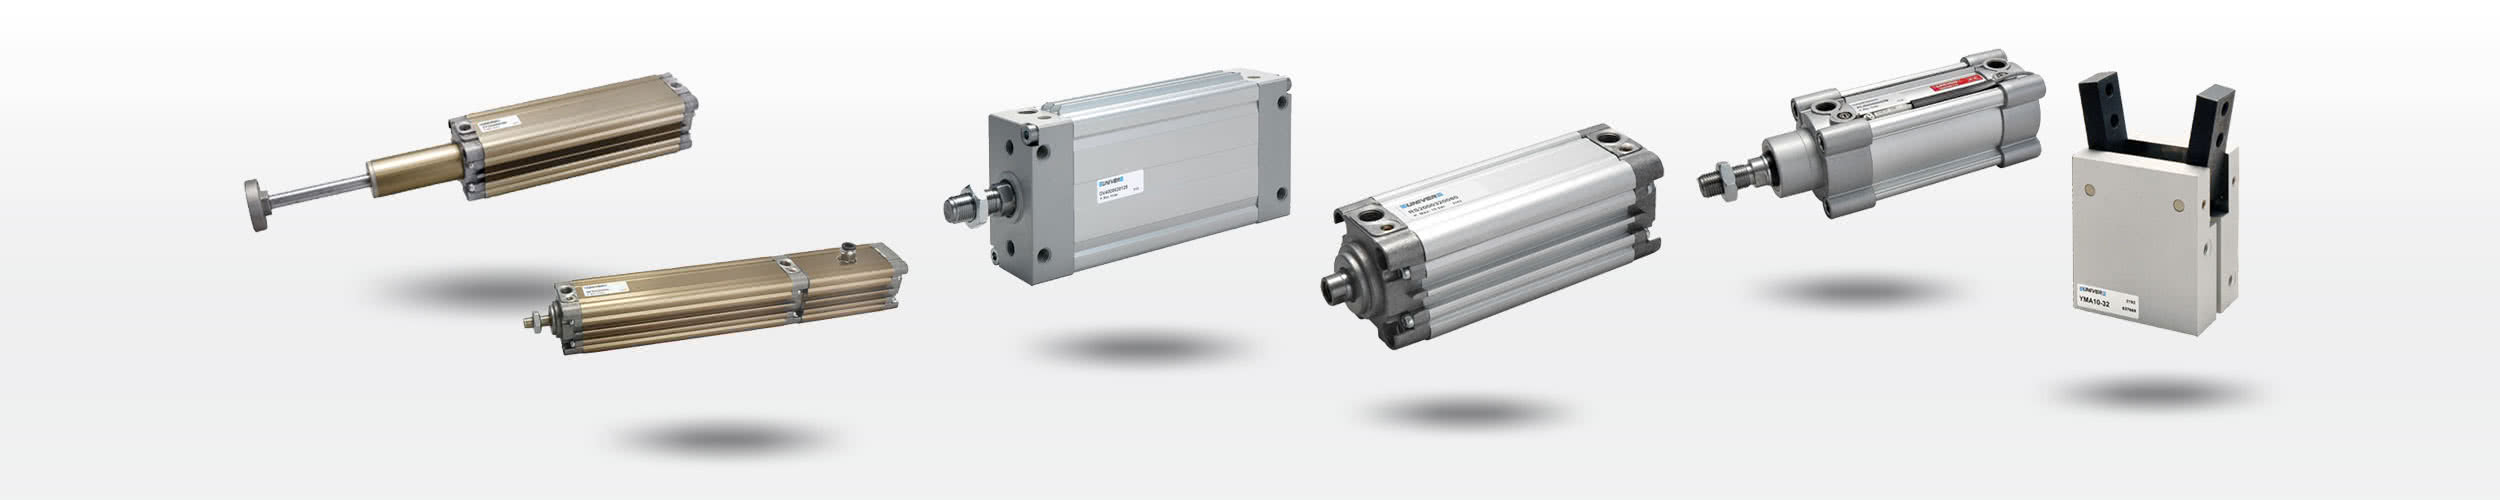 Pneumatic Cylinders - Standard (ISO), Compact, Oval, High-Tech